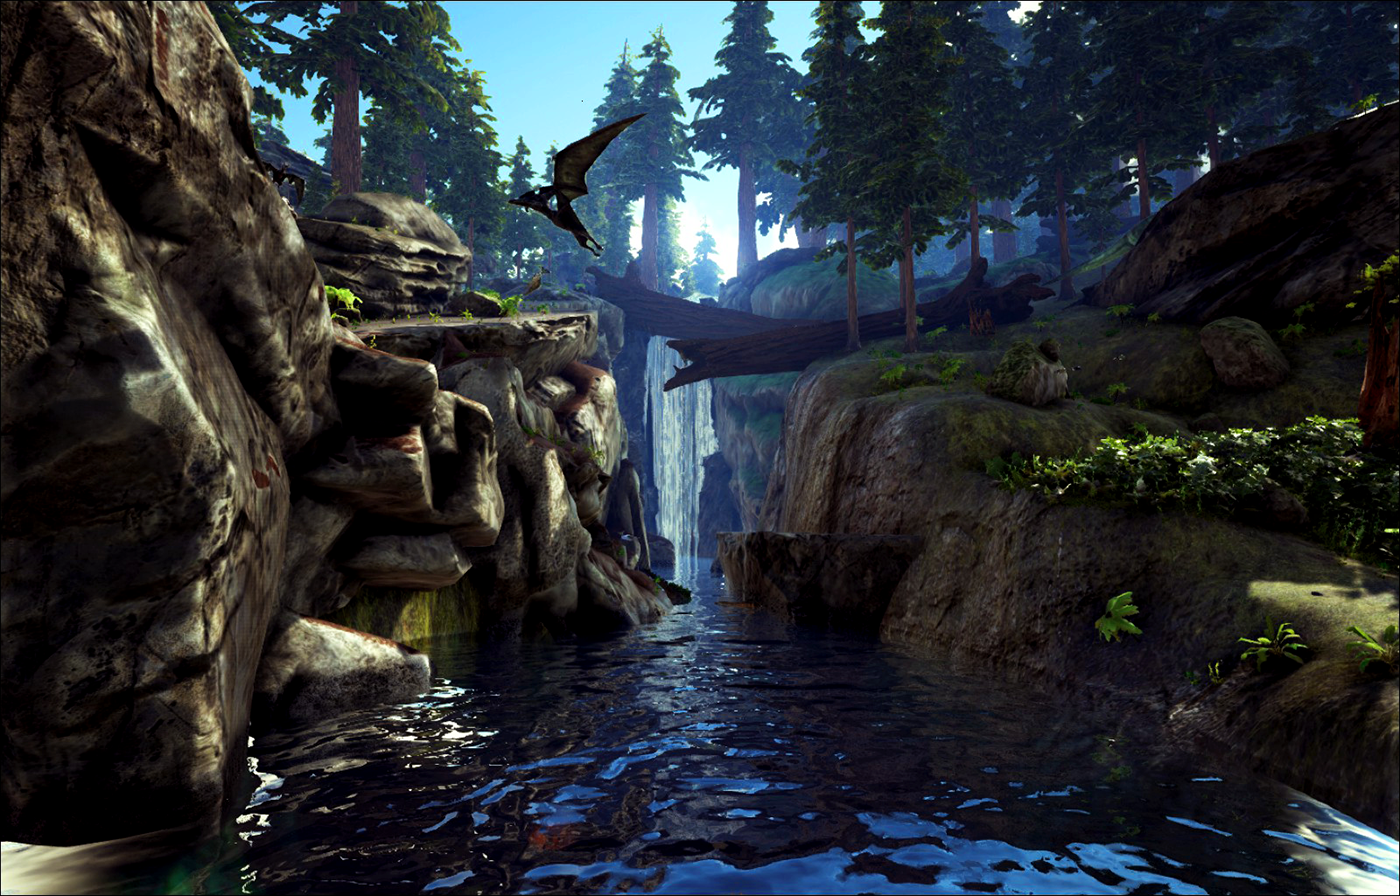 Ark: Survival Evolved developer will pay modders $4,000 per